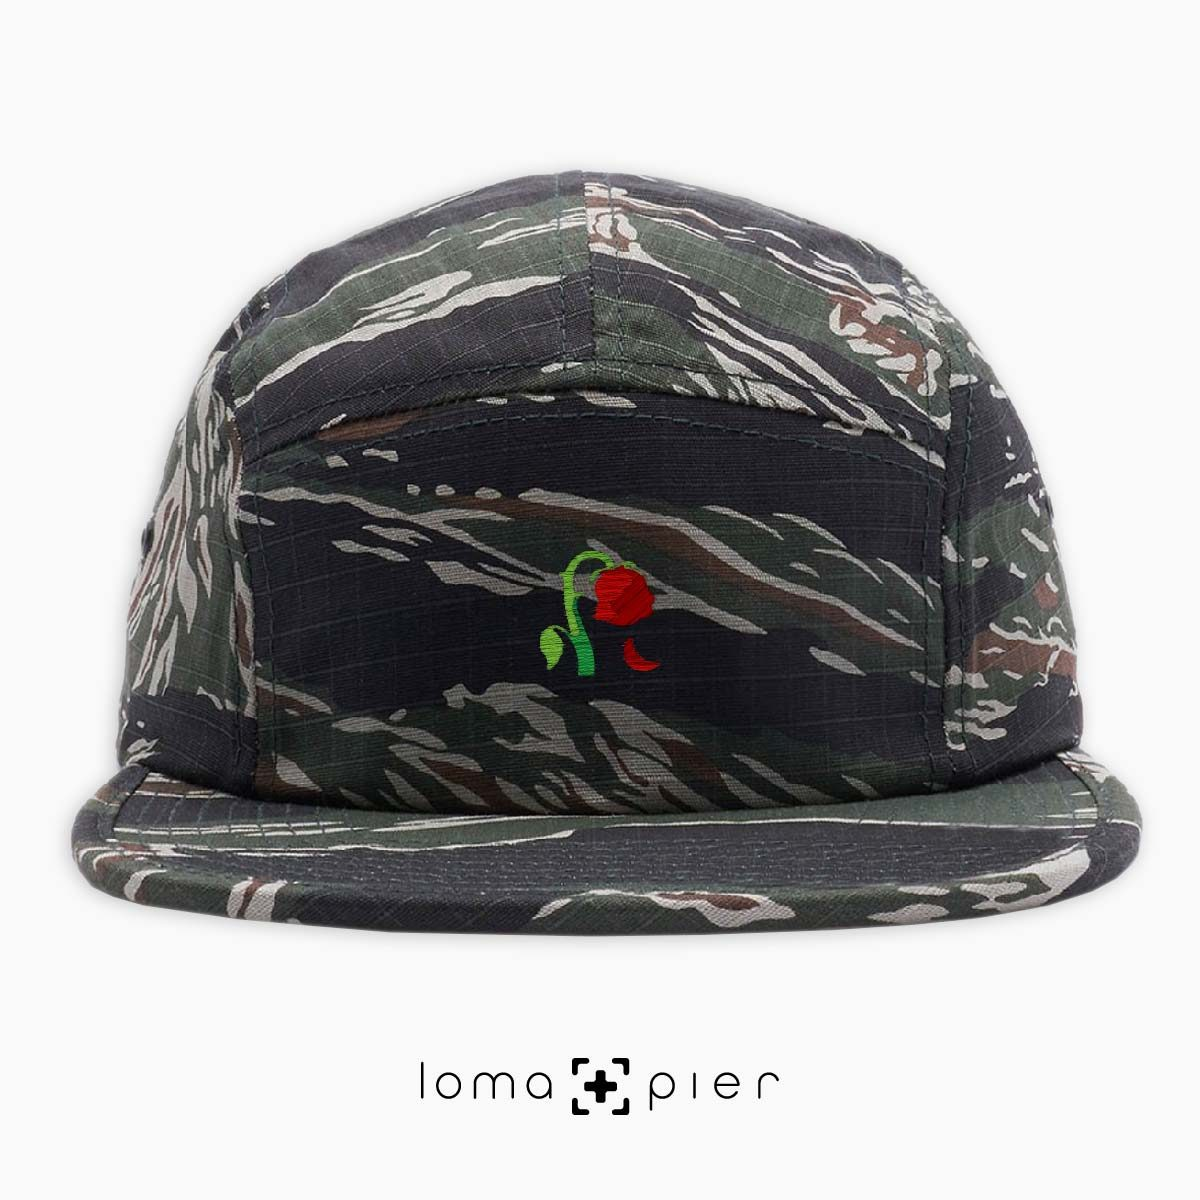 DYING ROSE EMOJI icon embroidered on a tiger camo cotton 5-panel hat by loma+pier hat store